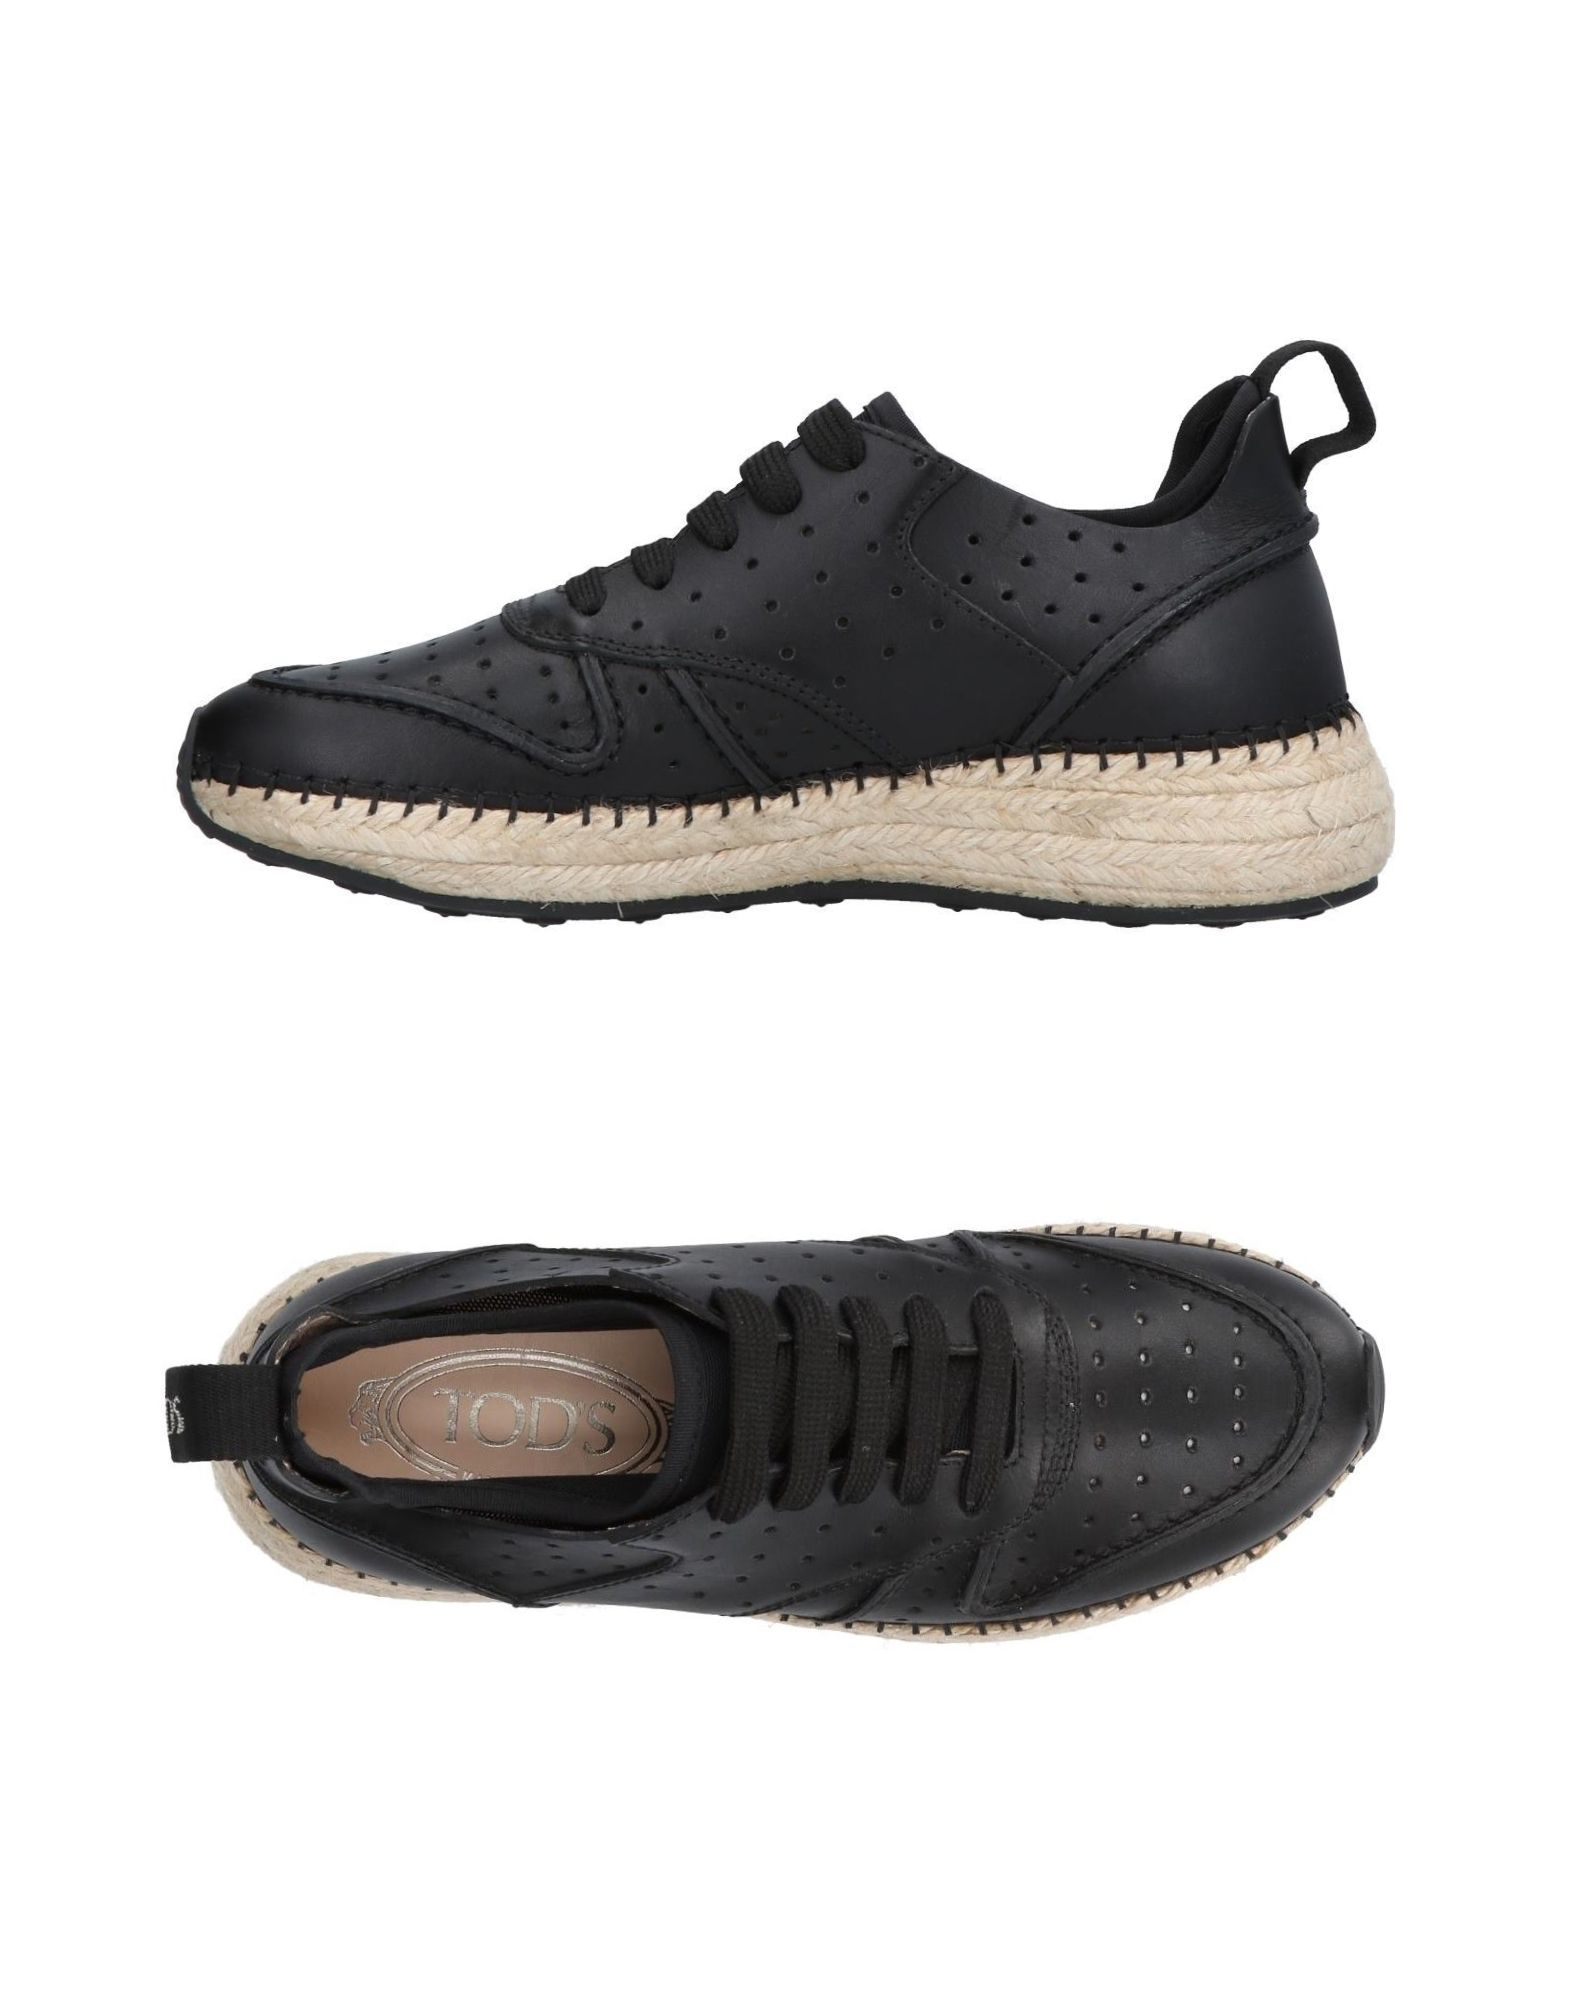 Sneakers Tods Donna - Acquista online su